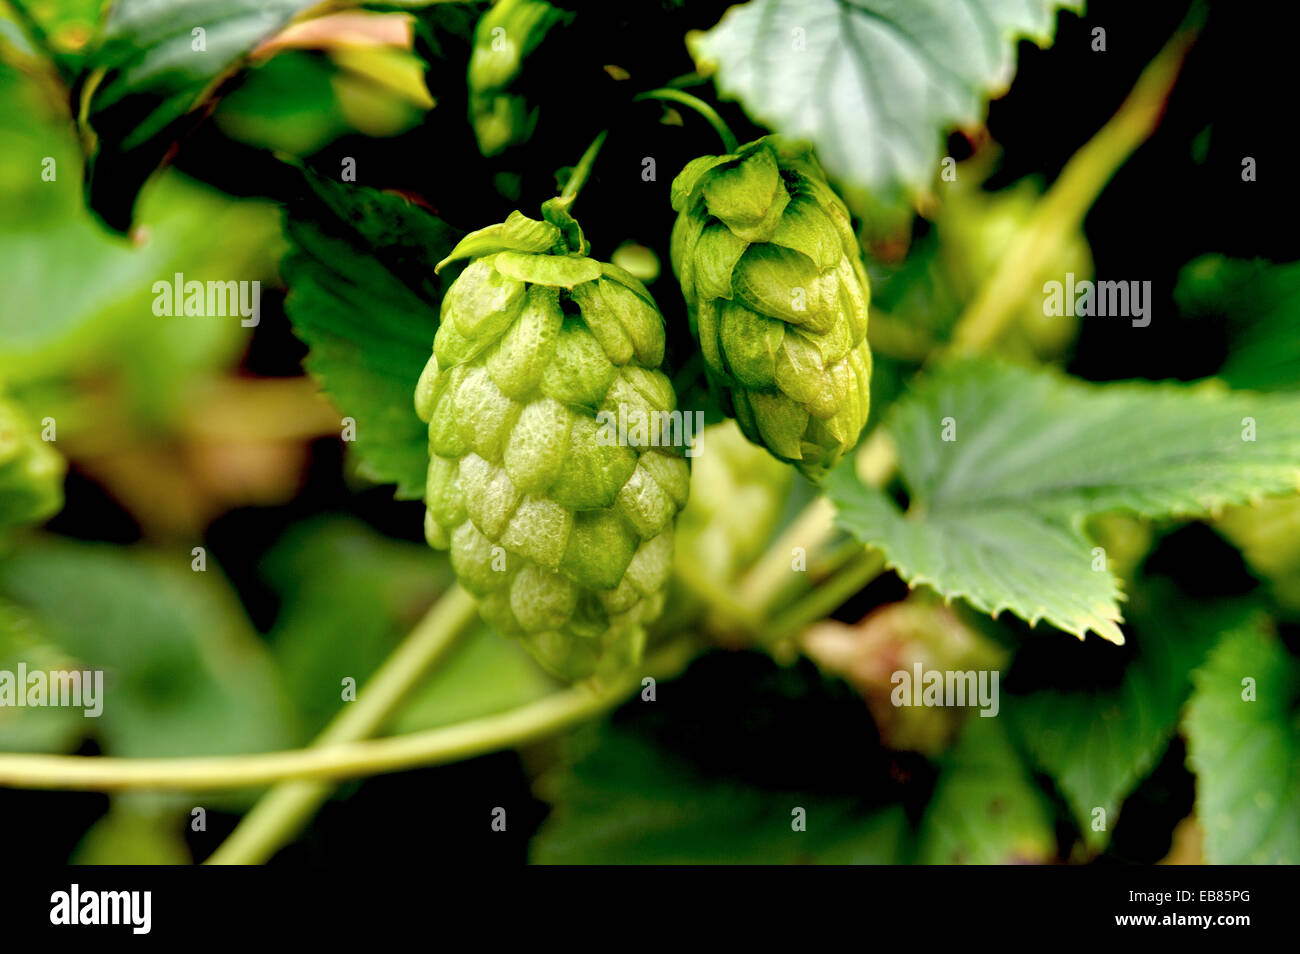 FRESH HOPS GROWING IN A HEDGEROW IN DEVON ENGLAND - Stock Image